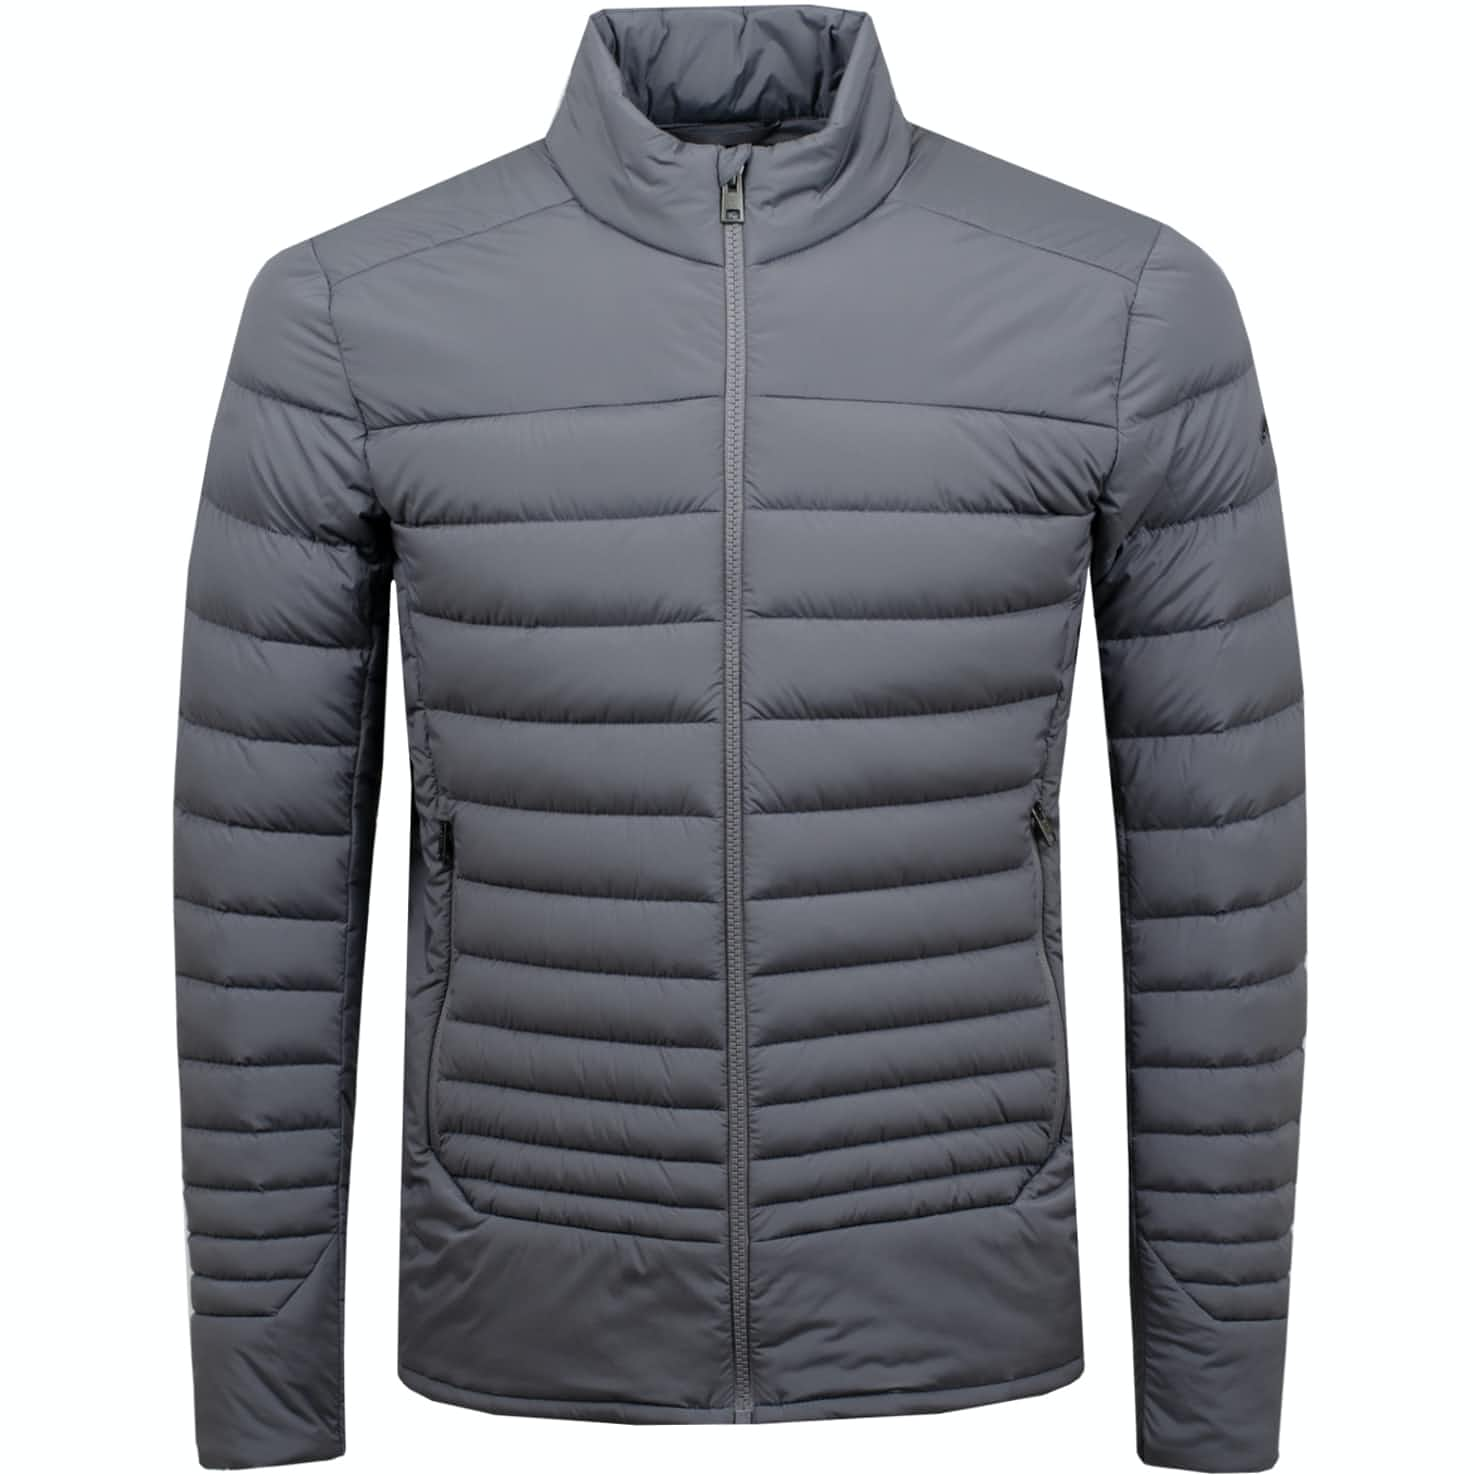 Blackcomb Stretch Jacket Steel Grey - 2019